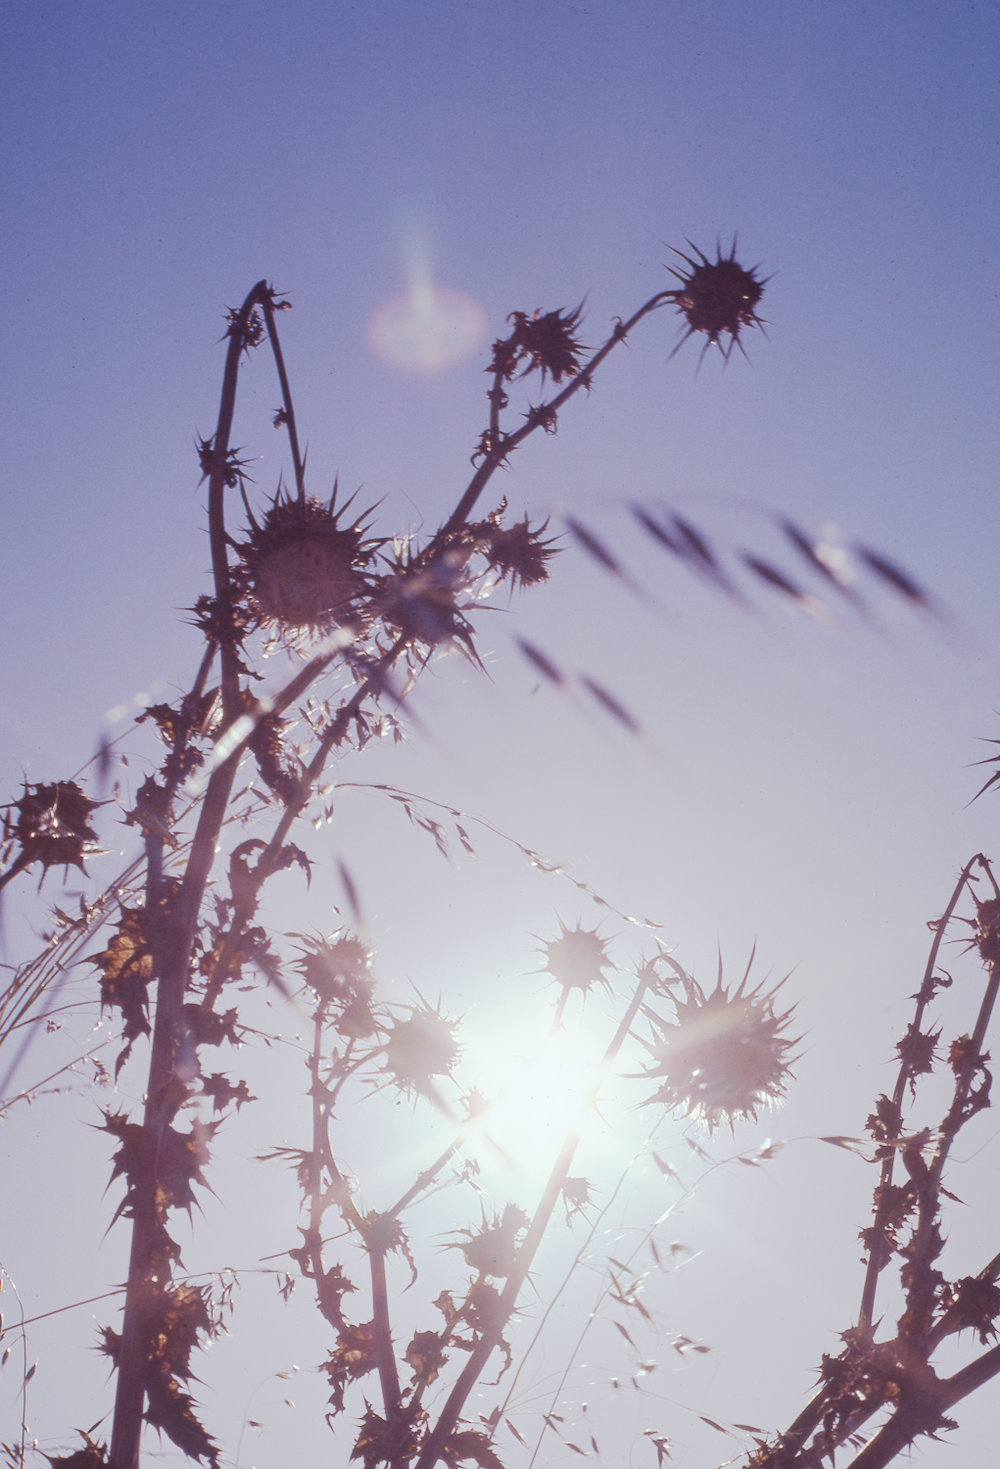 Thistles, photo by Oscar Ellis, date unknown